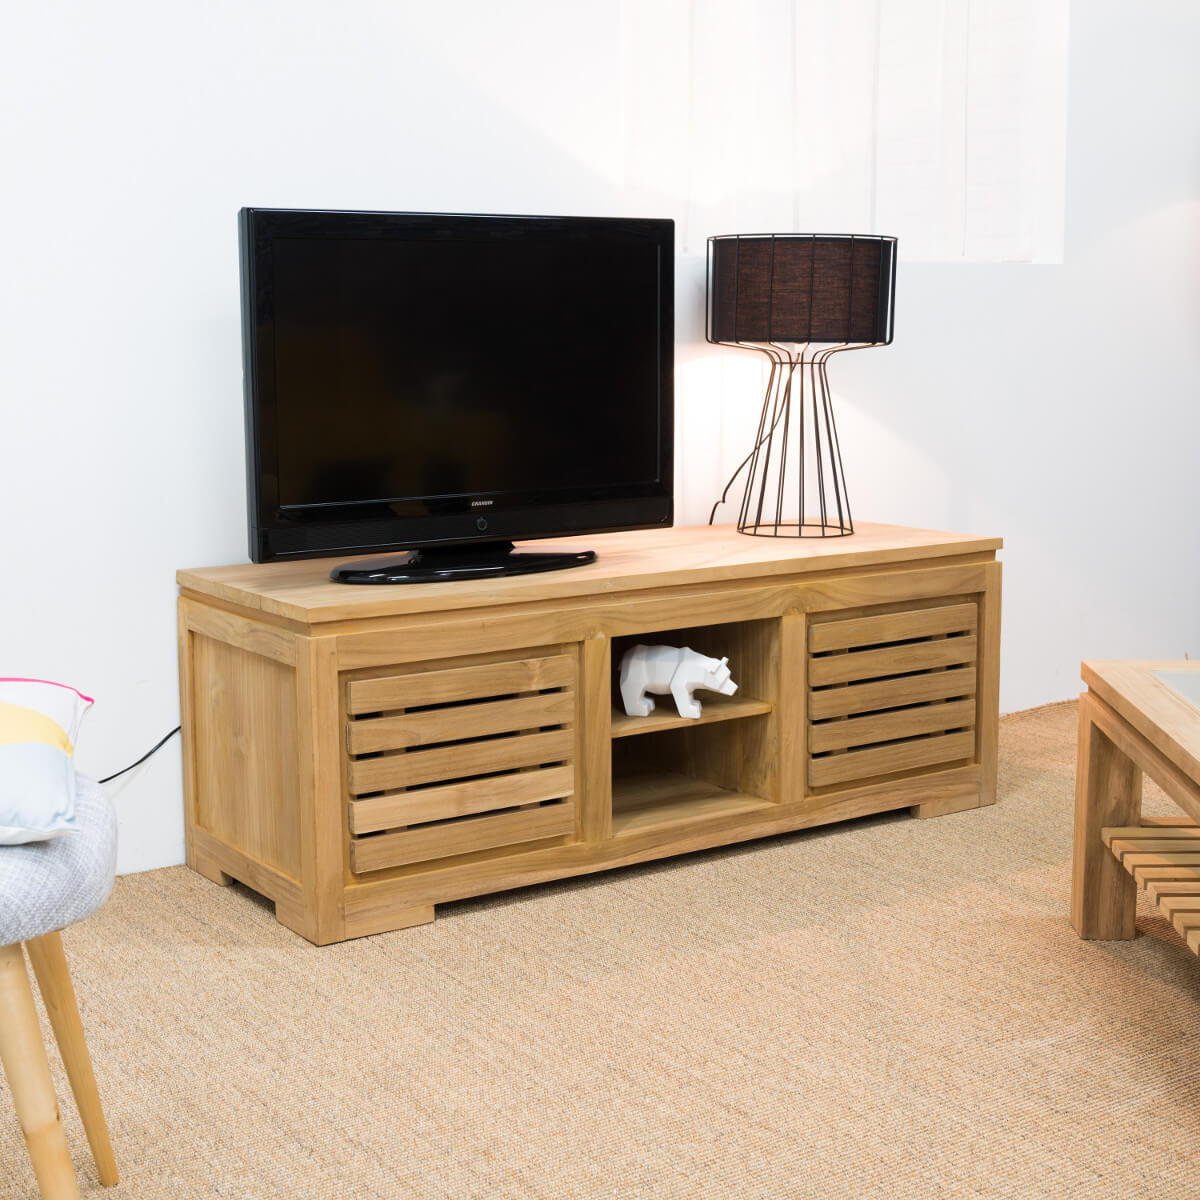 Meuble tv teck meuble tv bois naturel rectangle zen for Meuble de tele bois